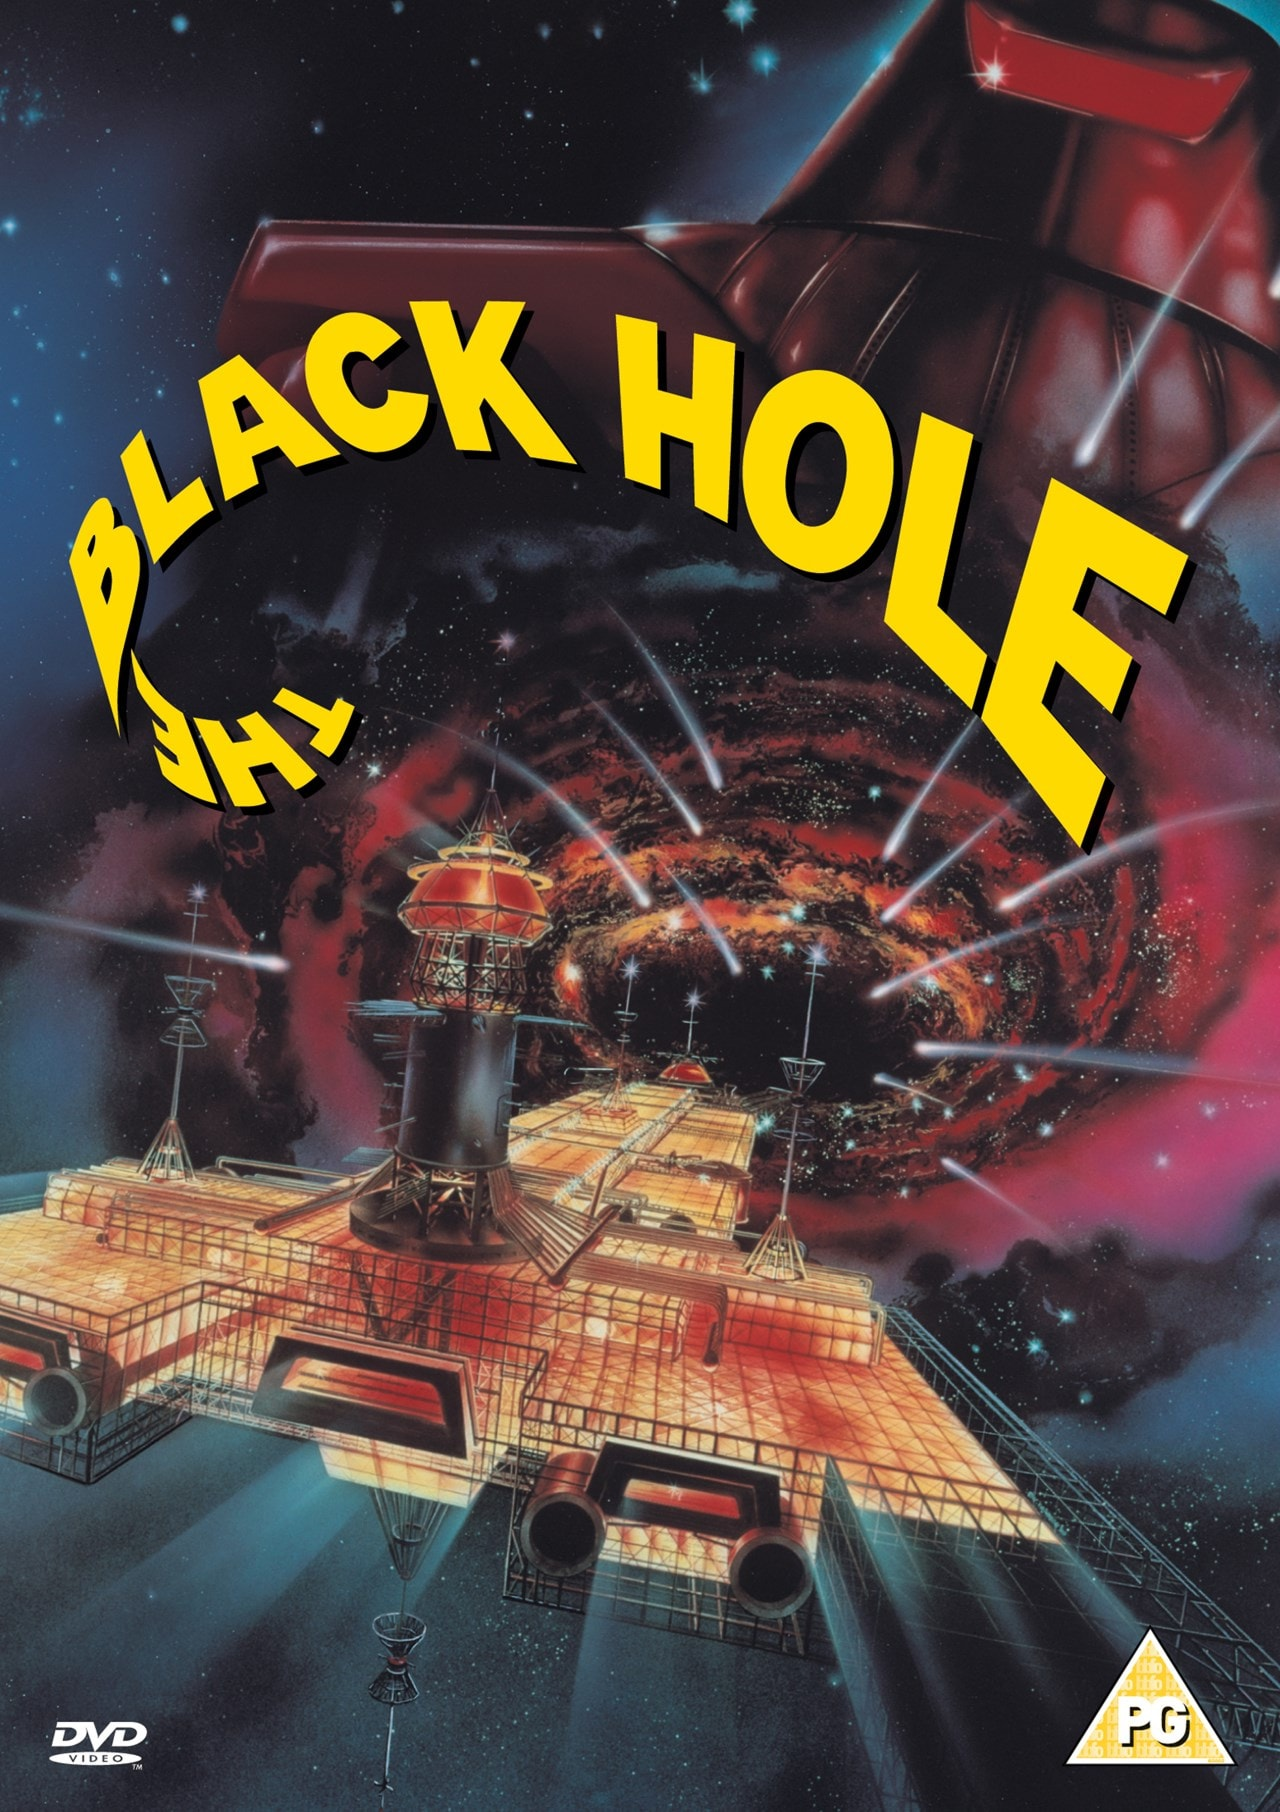 The Black Hole - 1